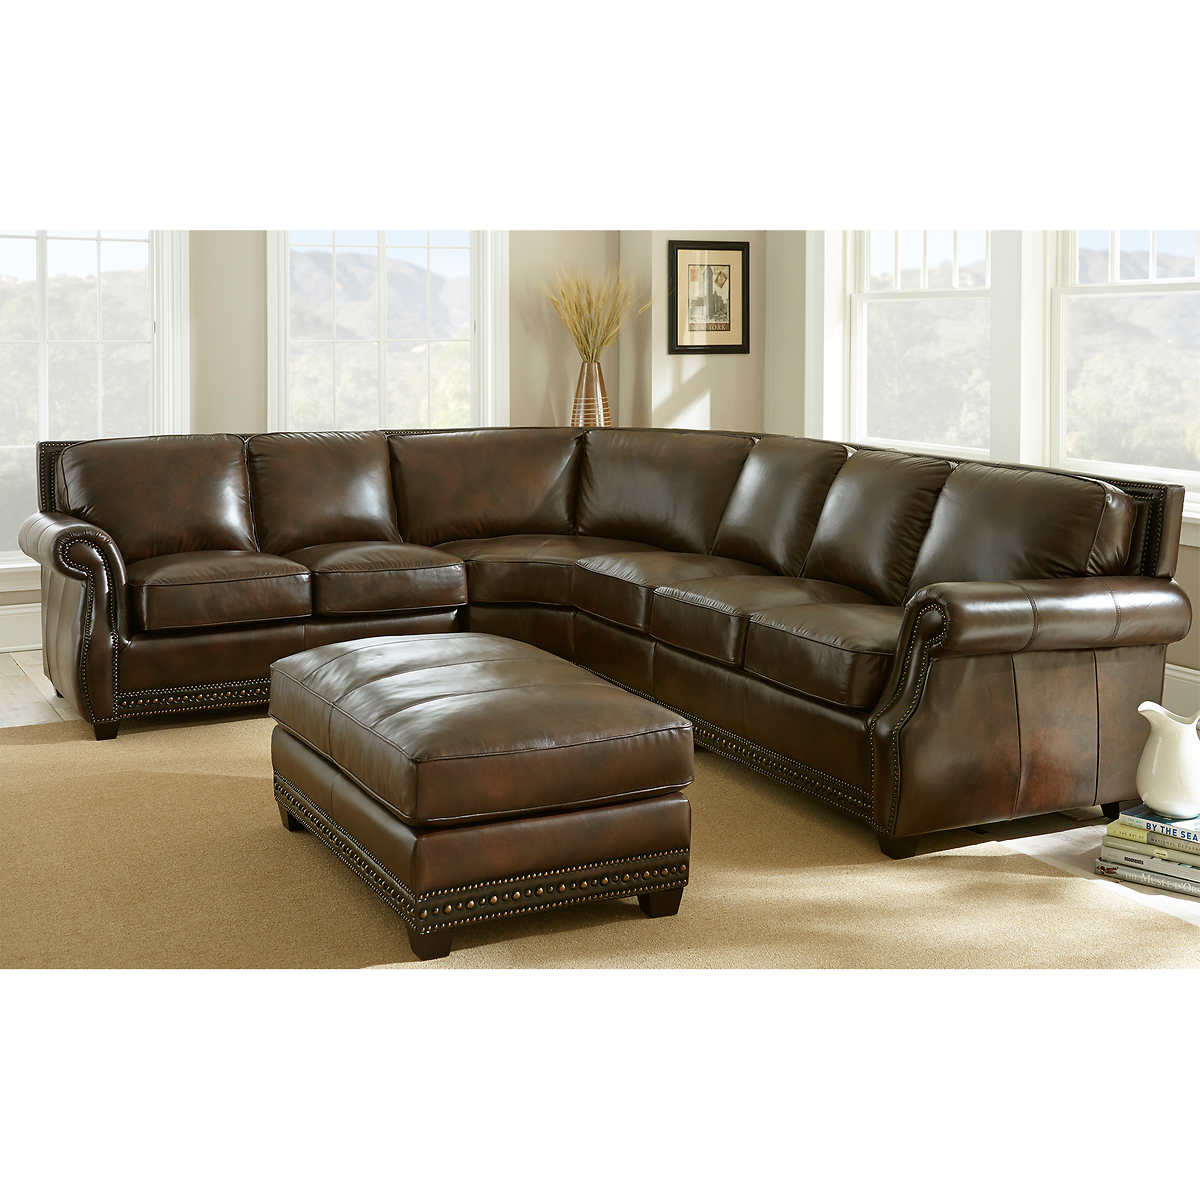 Leather Sectional Couches leather sofas & sectionals | costco